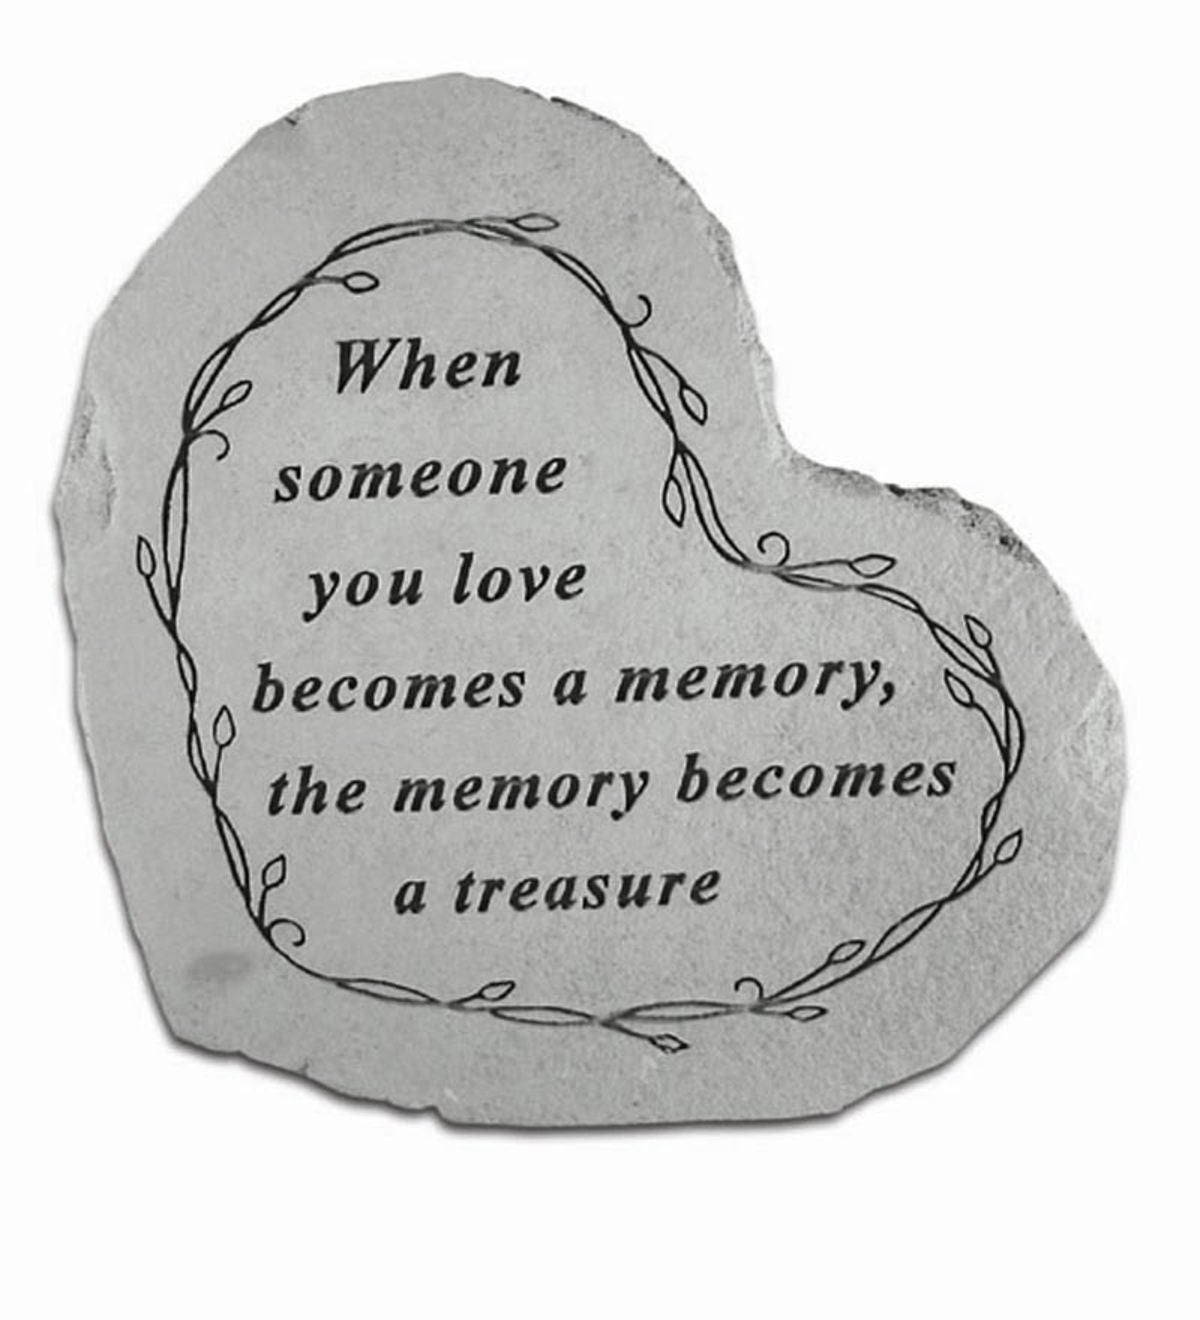 USA-Made Cast Stone Heart Memorial Indoor/Outdoor Plaque